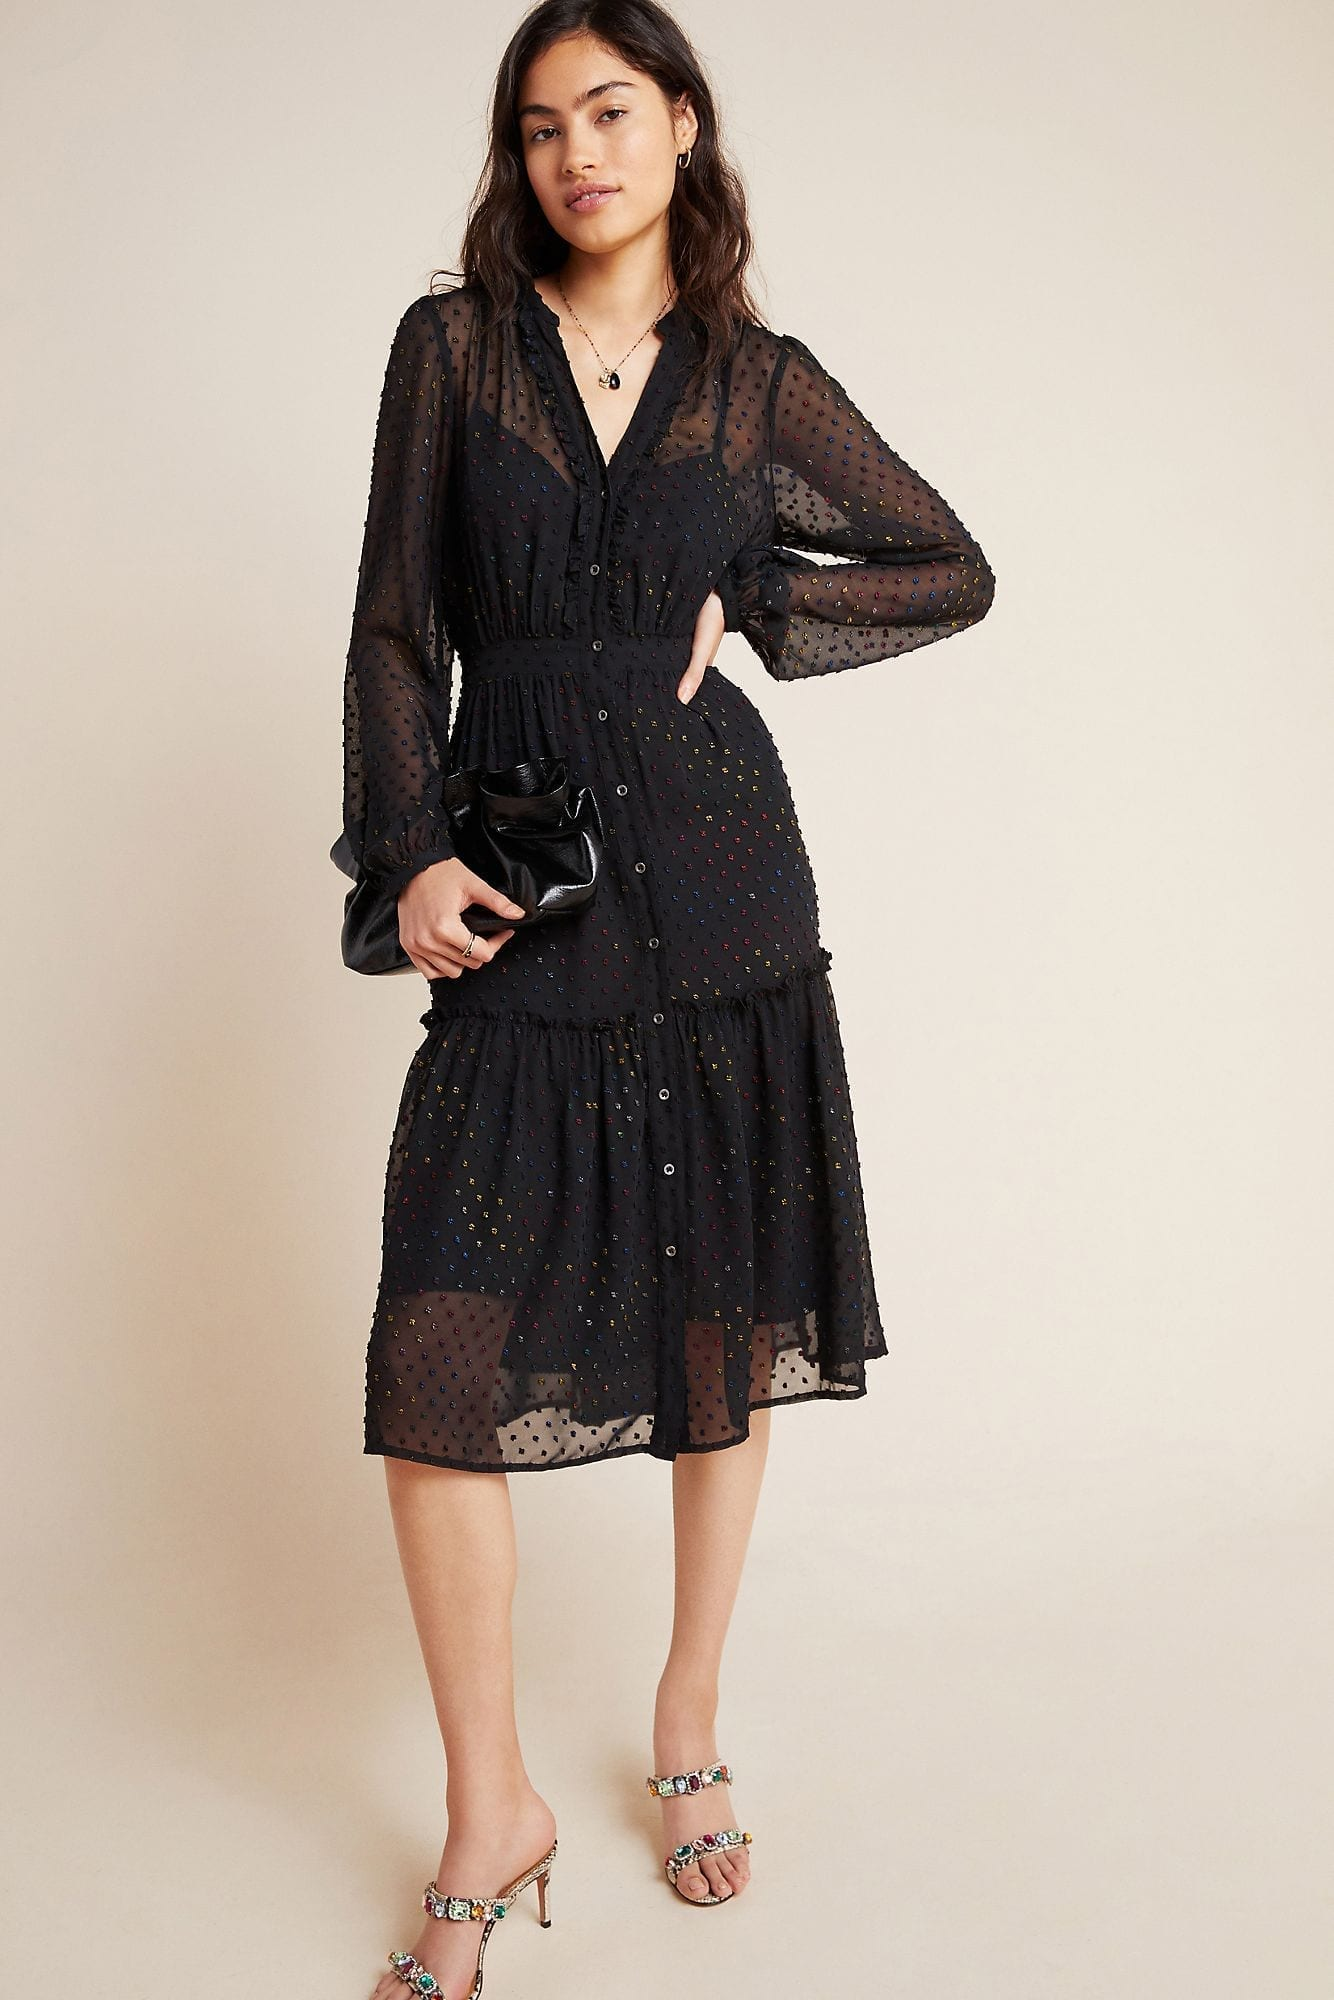 ANTHROPOLOGIE Audrey Clip Dot Shirt Dress